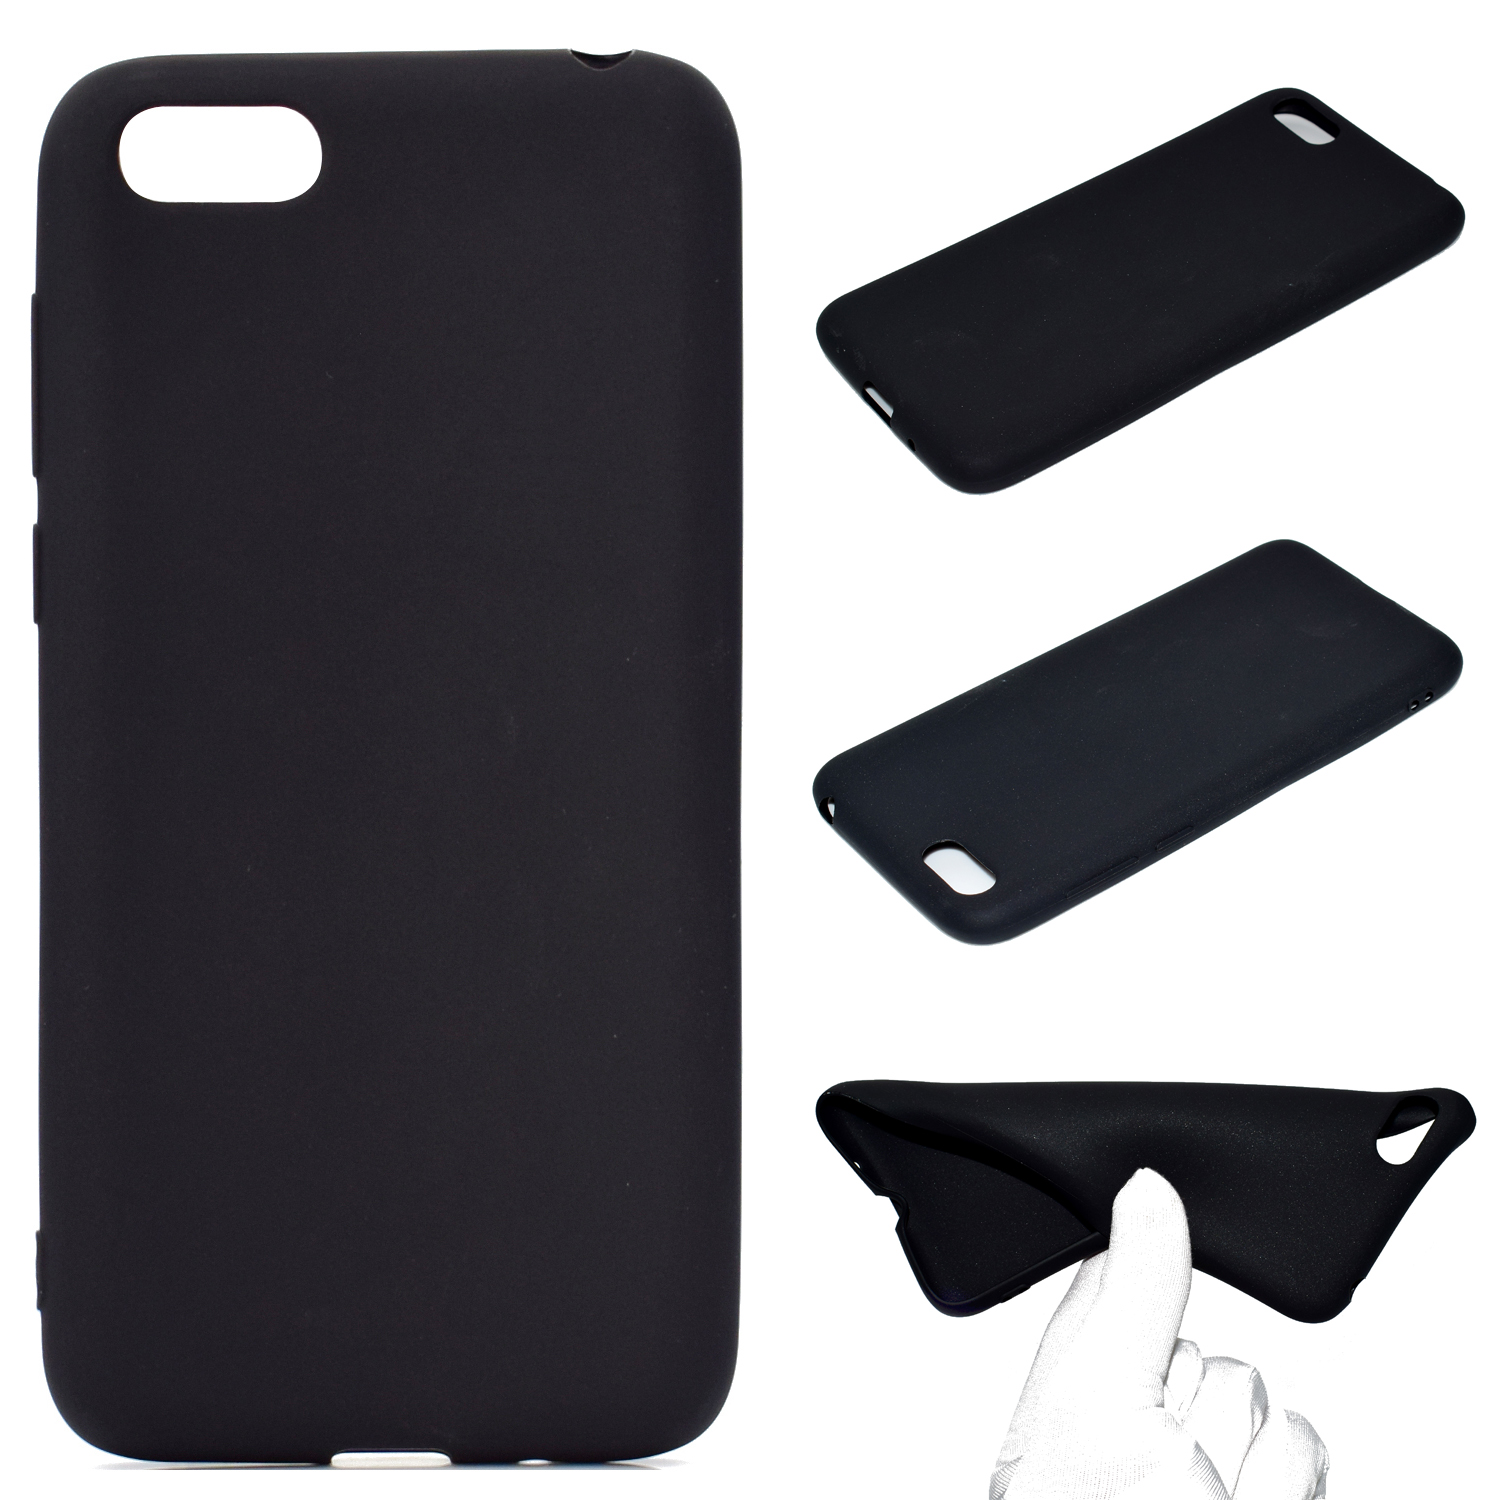 for HUAWEI Y5 2018 Cute Candy Color Matte TPU Anti-scratch Non-slip Protective Cover Back Case black